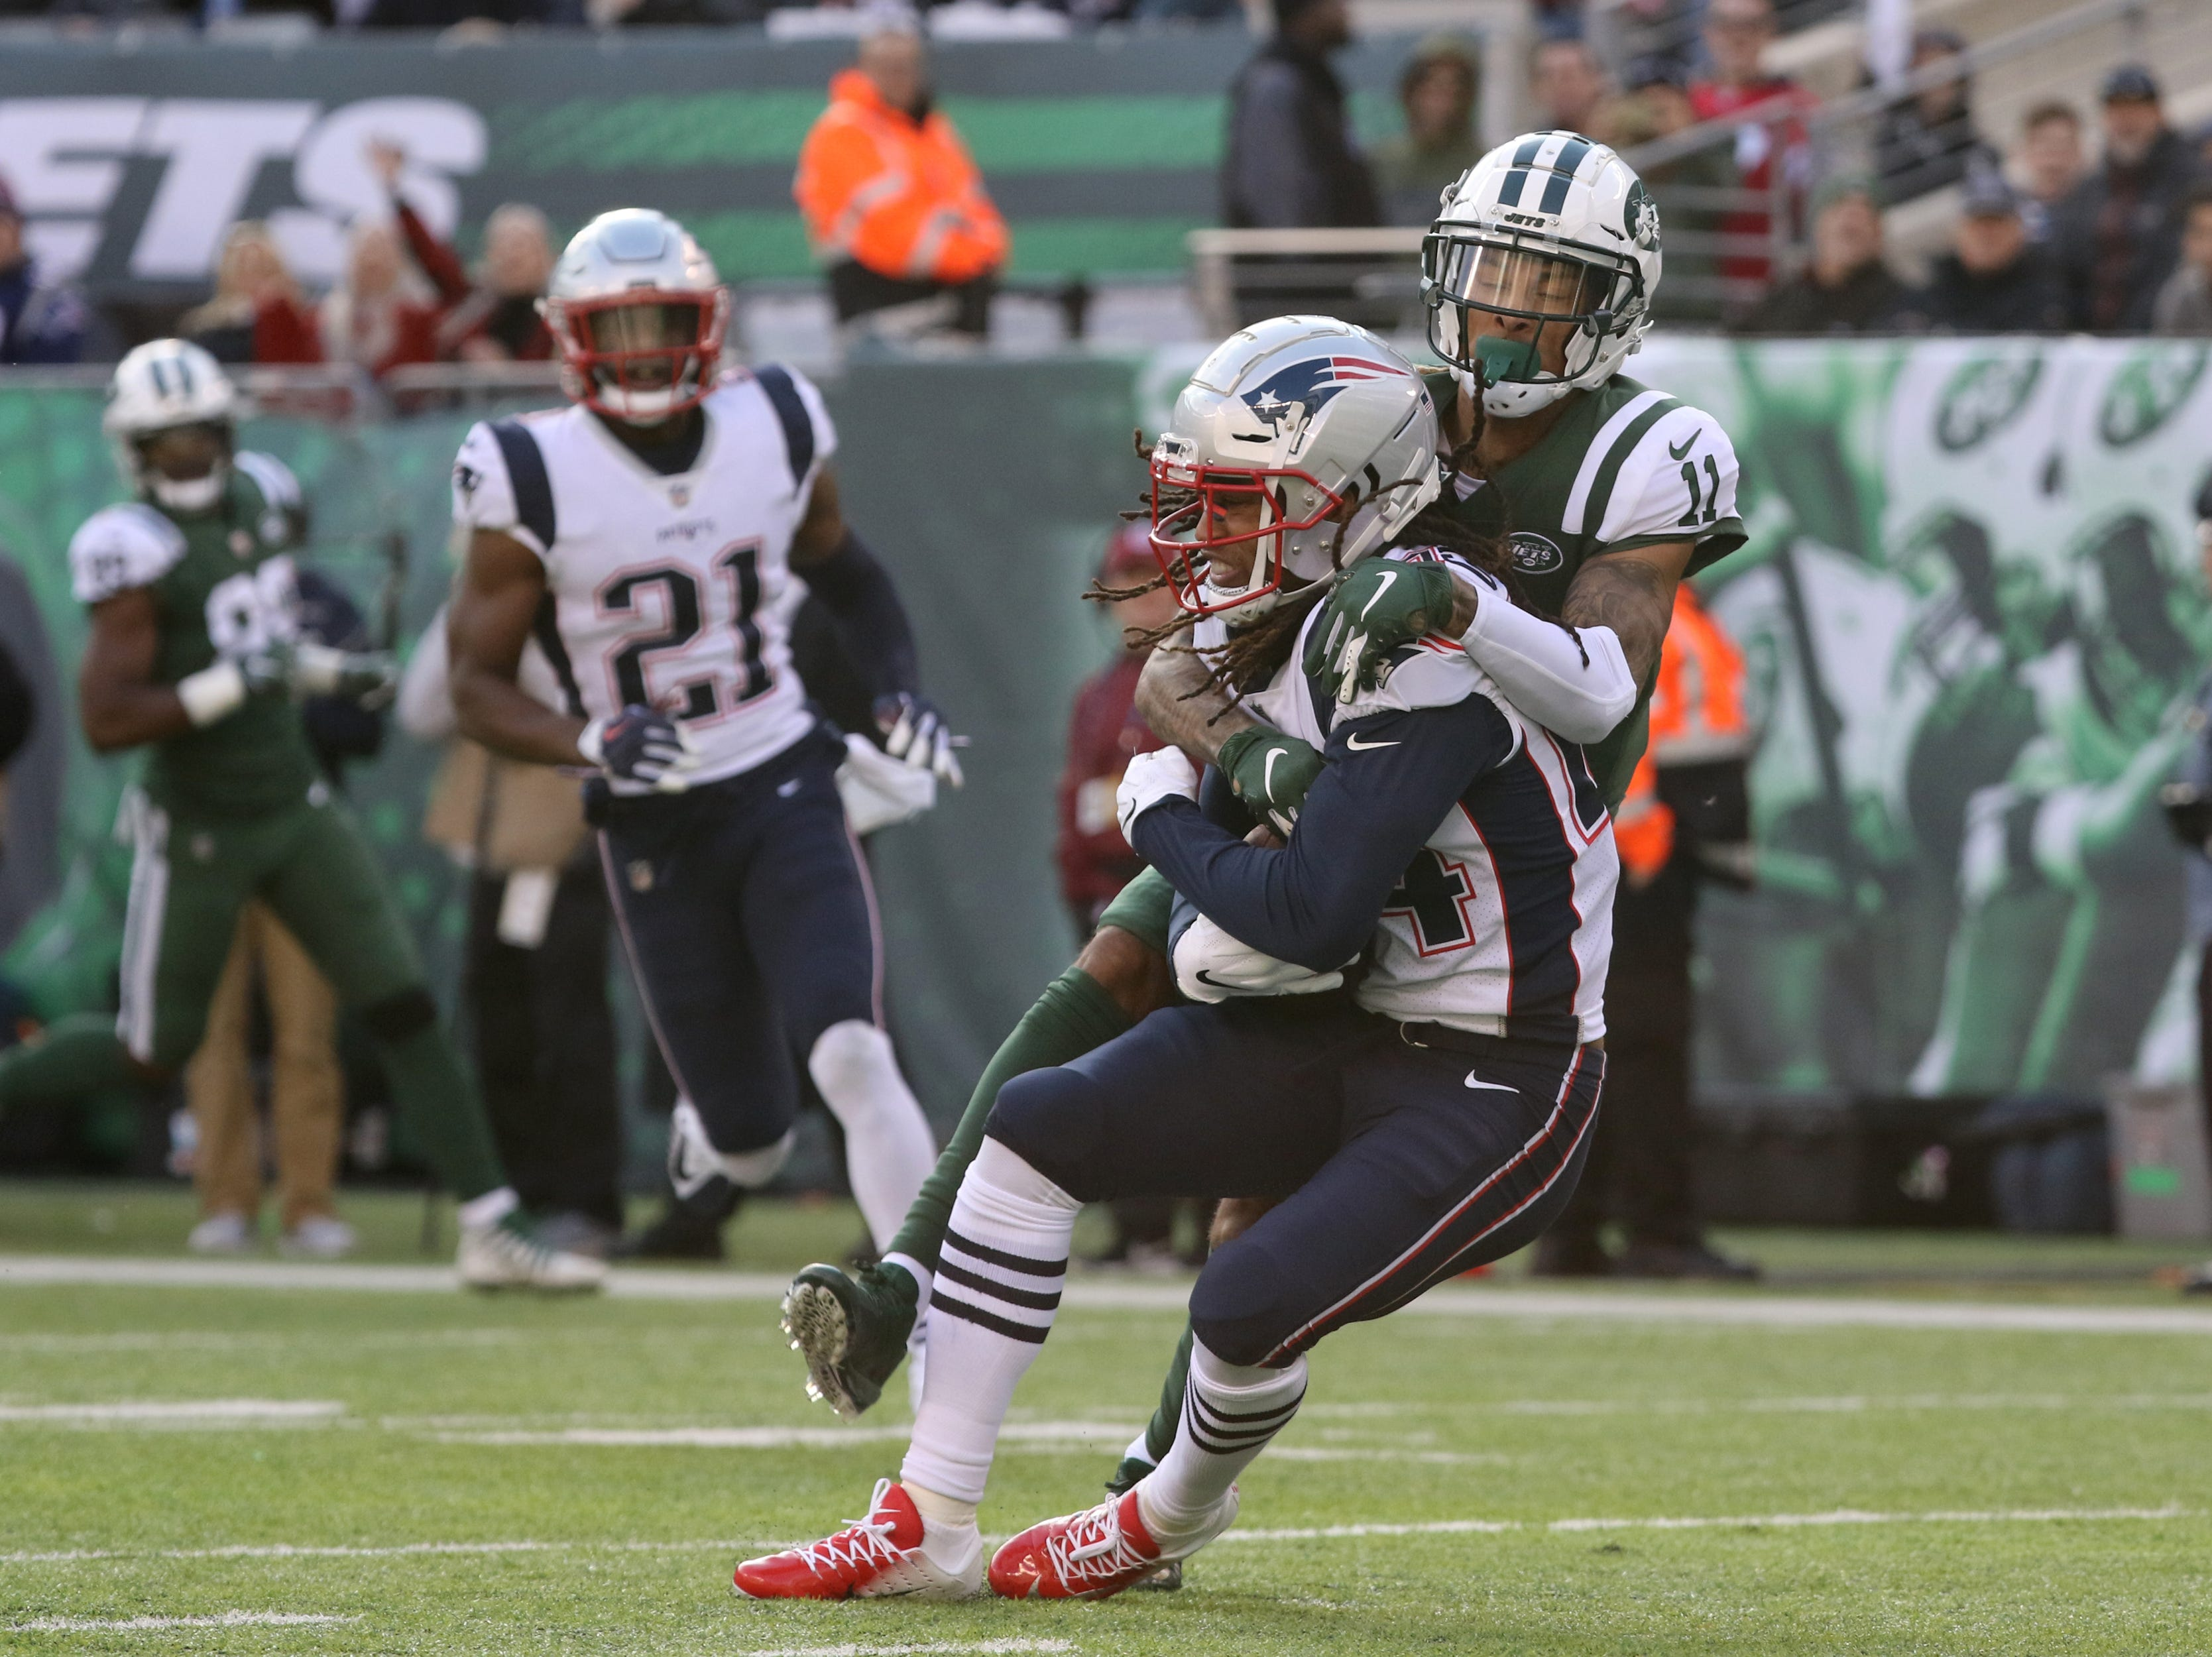 Robby Anderson, of the Jets was unable to intercept a pass meant for Stephon Gilmore of the Patriots, in the first half. Sunday, November 25, 2018